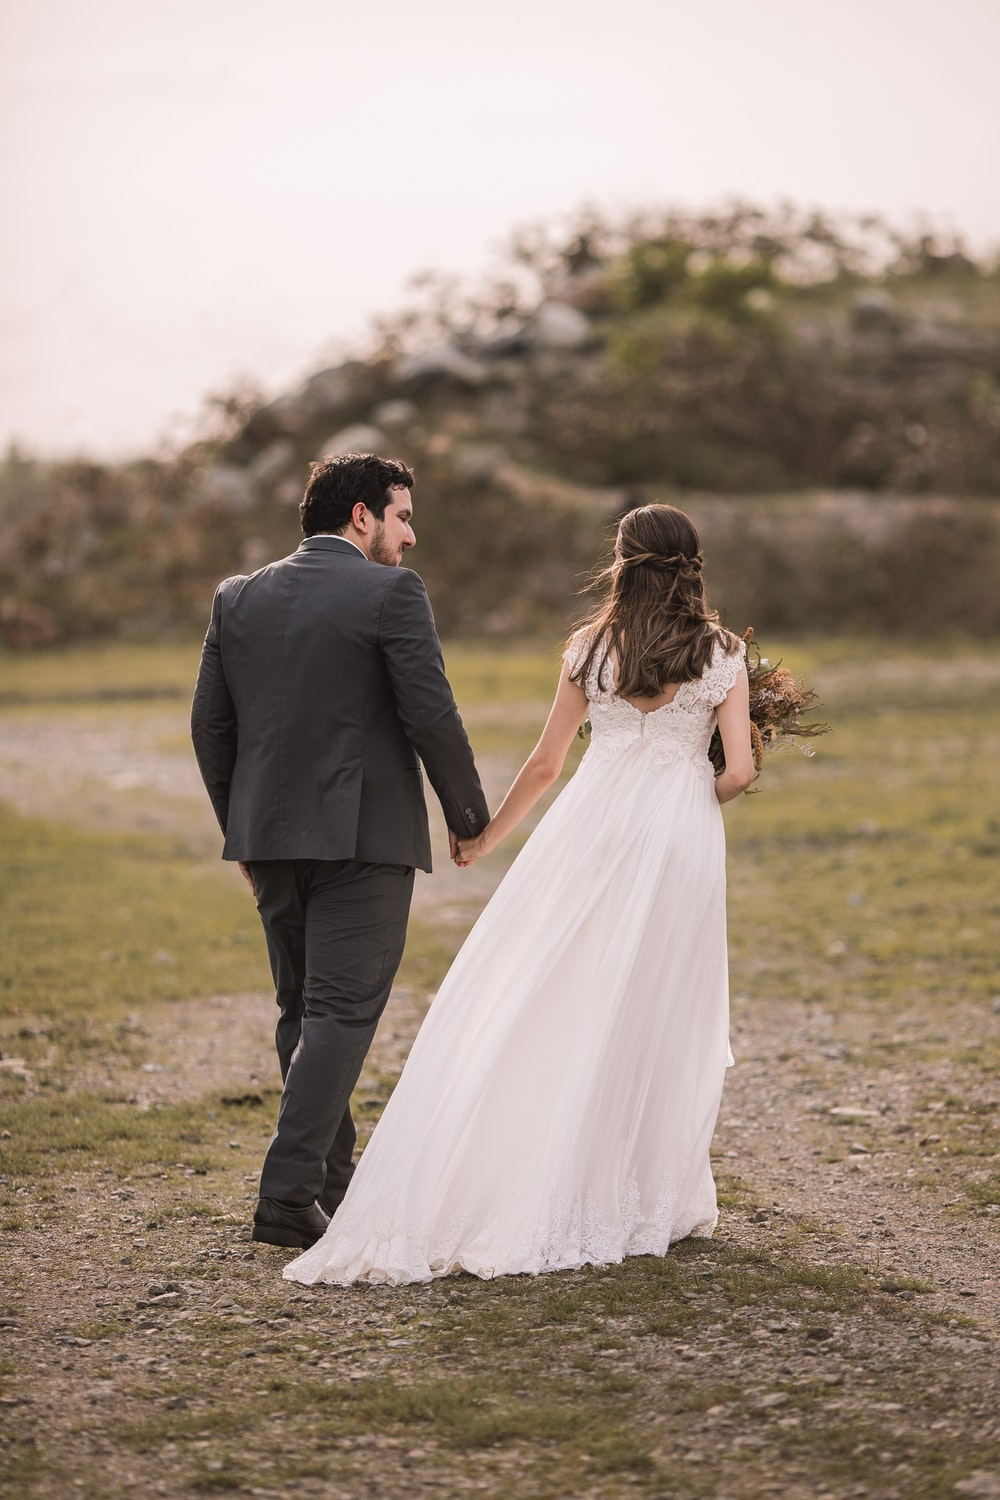 man in black suit and woman in white wedding dress kissing on green grass field during